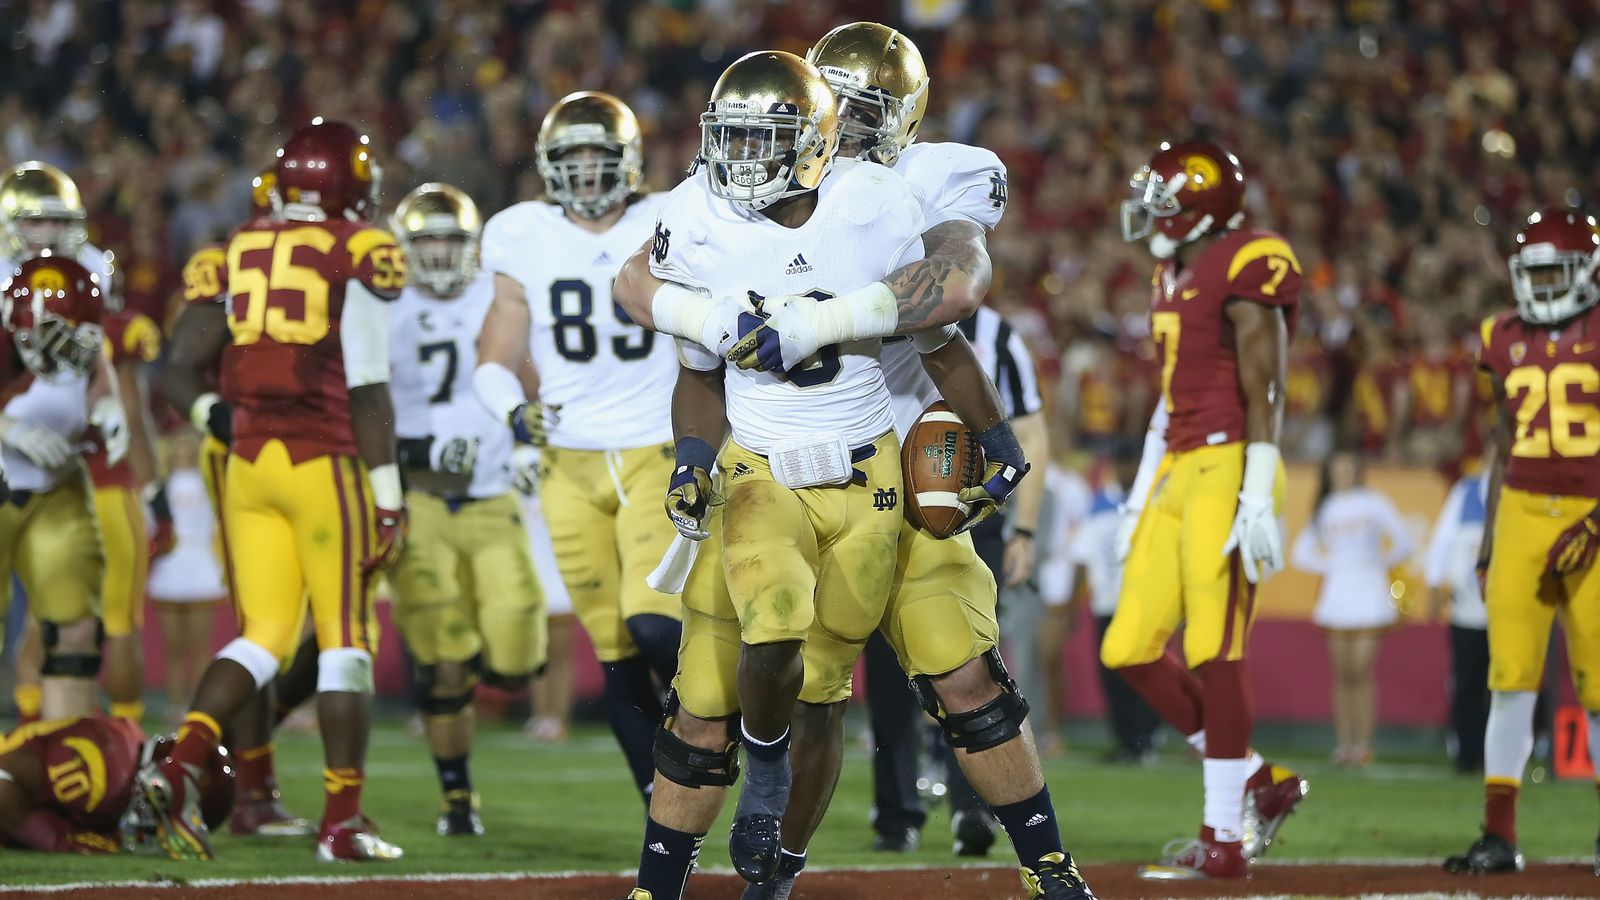 what is the score of the notre dame game highest college football score